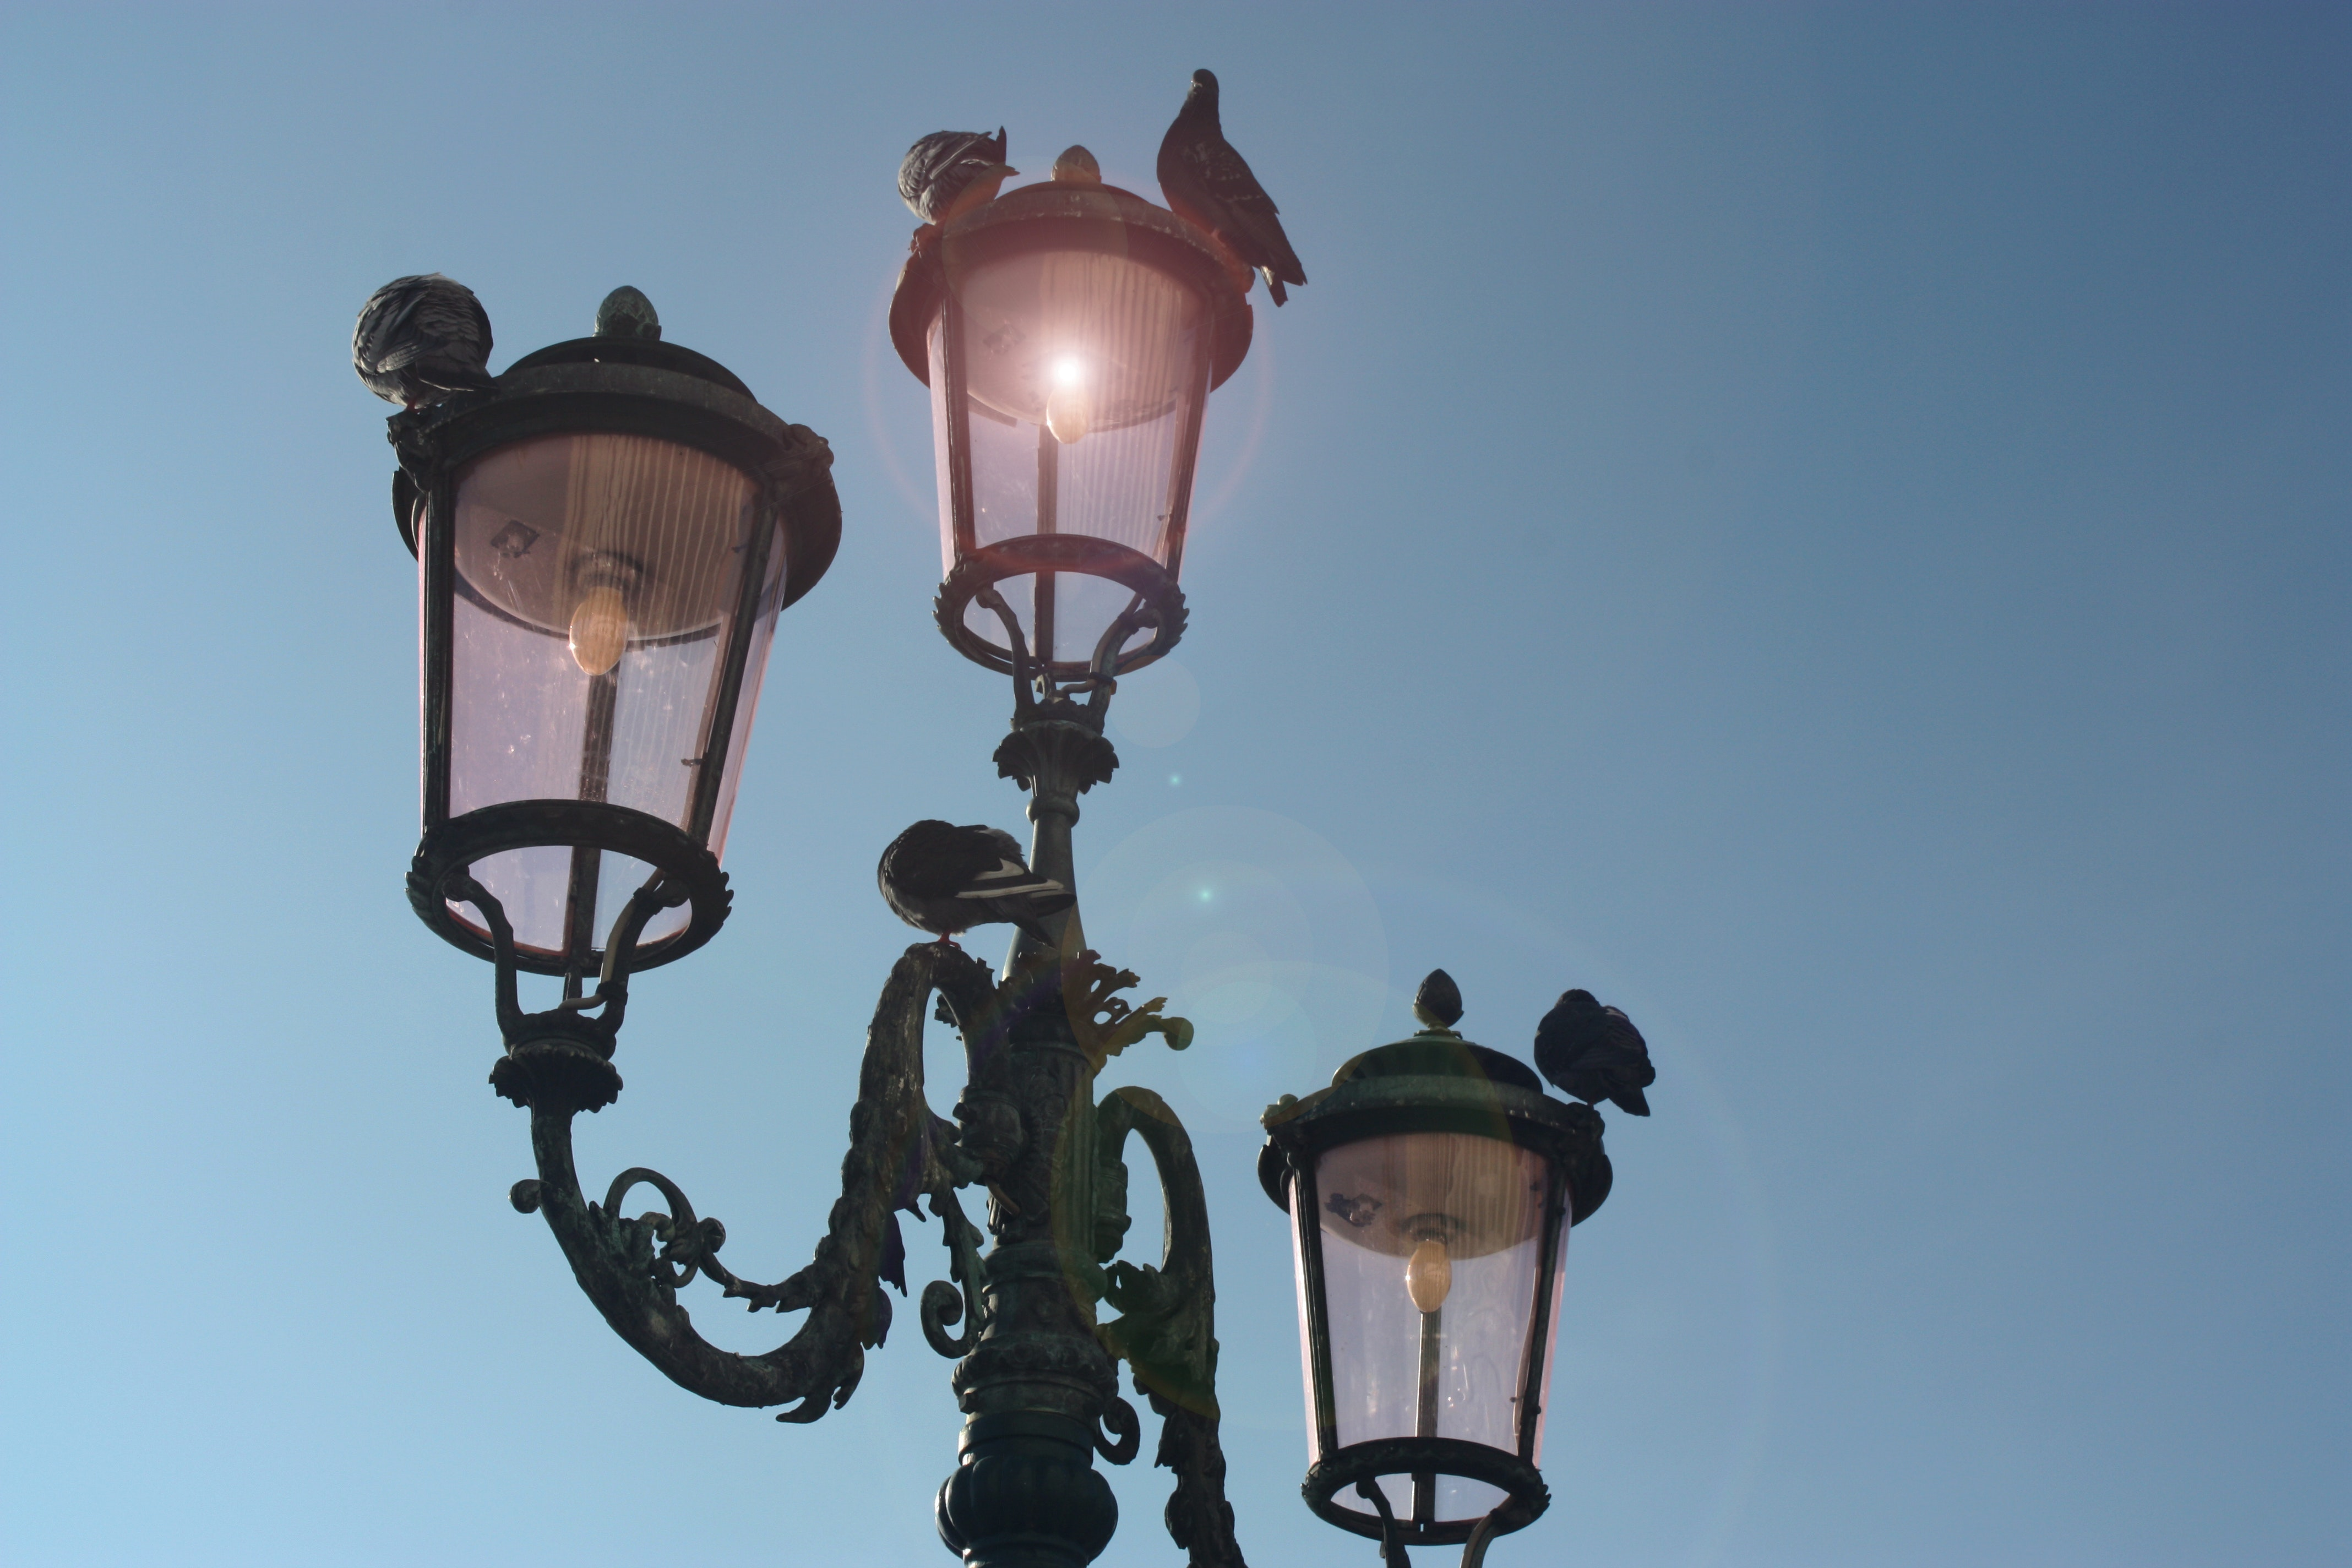 Black 3-light Post Lamp Under Blue Sky, Antique, Lamp, Venice, Traditional, HQ Photo